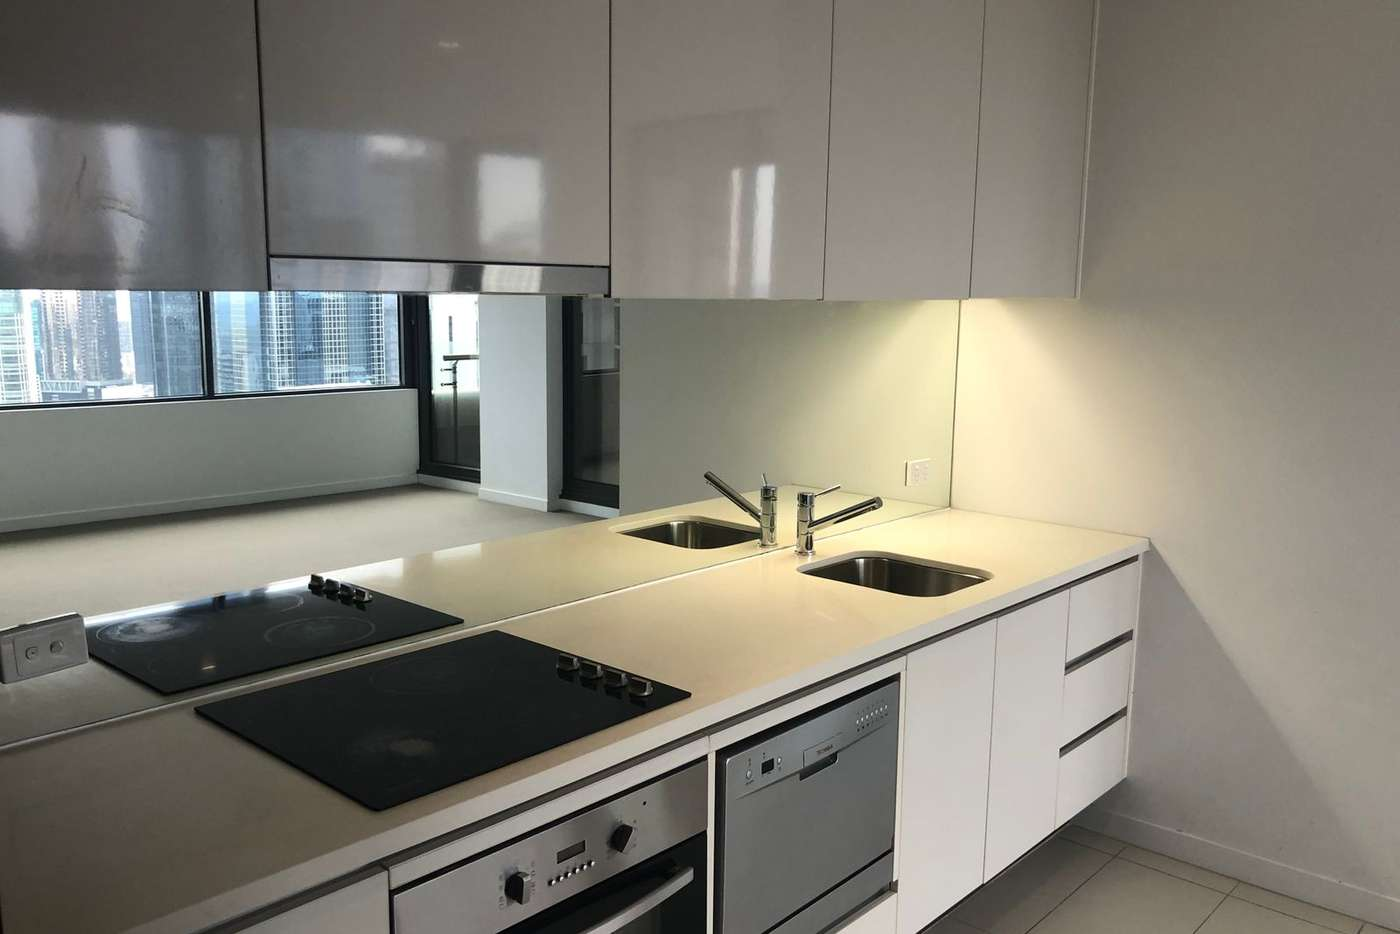 Main view of Homely apartment listing, 3405/639 Lonsdale Street, Melbourne VIC 3000